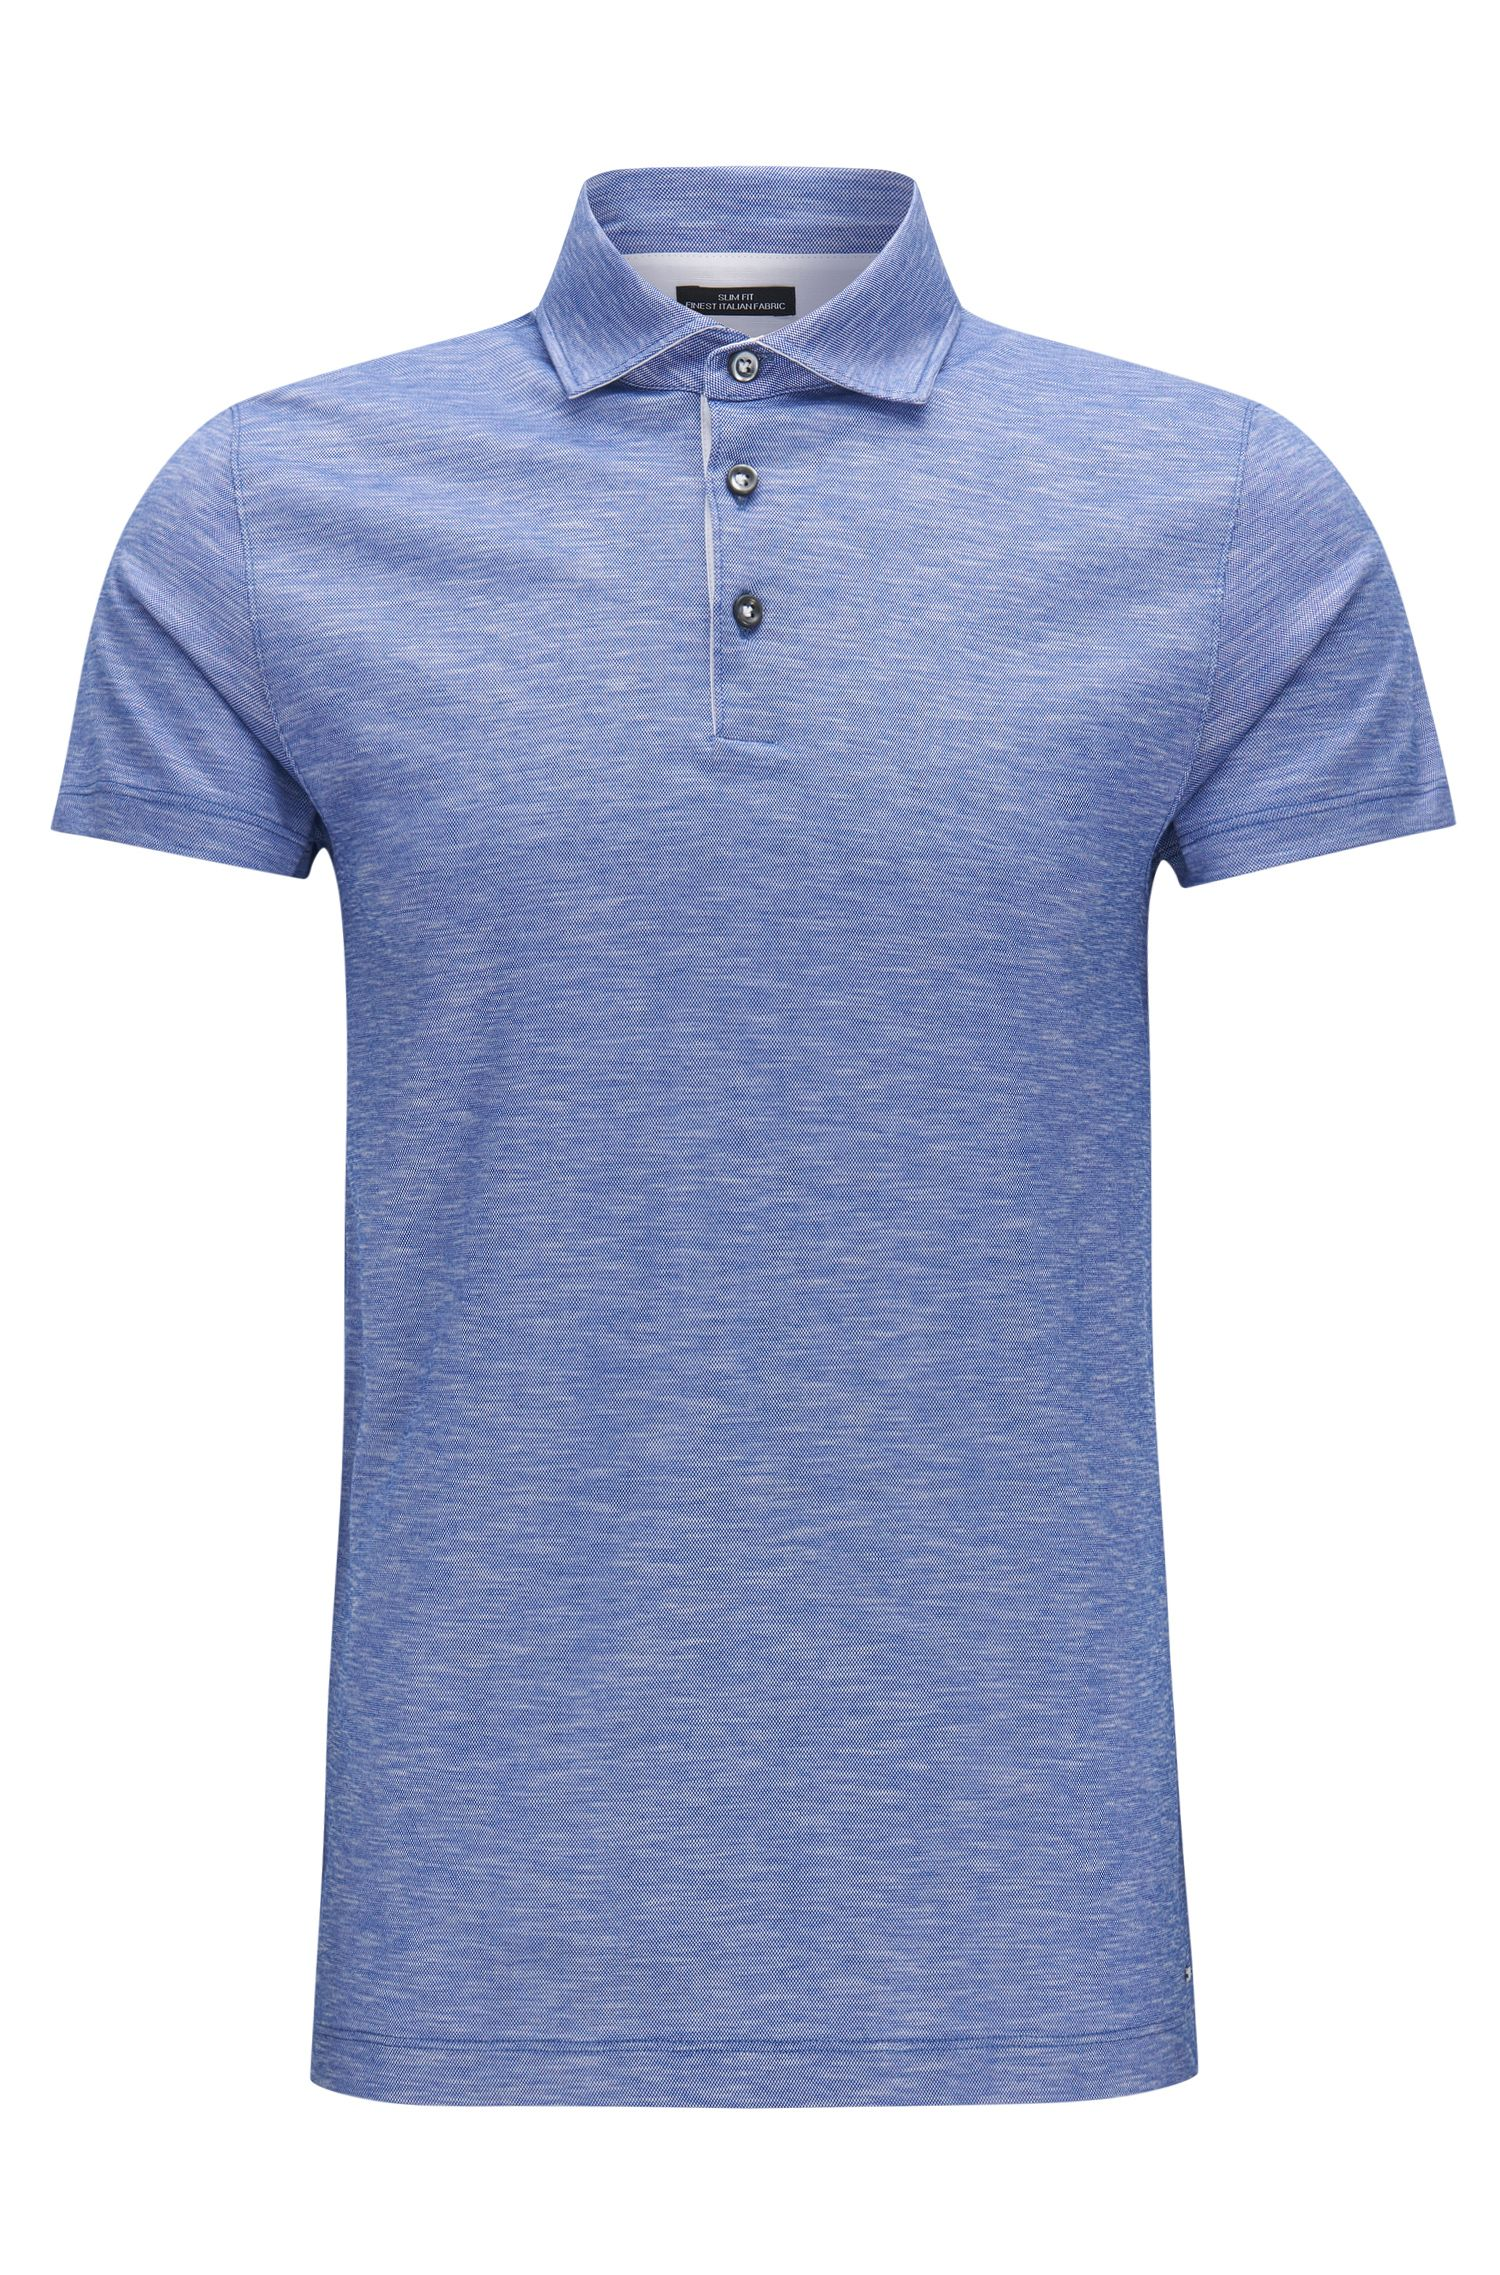 Slim-fit polo shirt in linen-look cotton jacquard